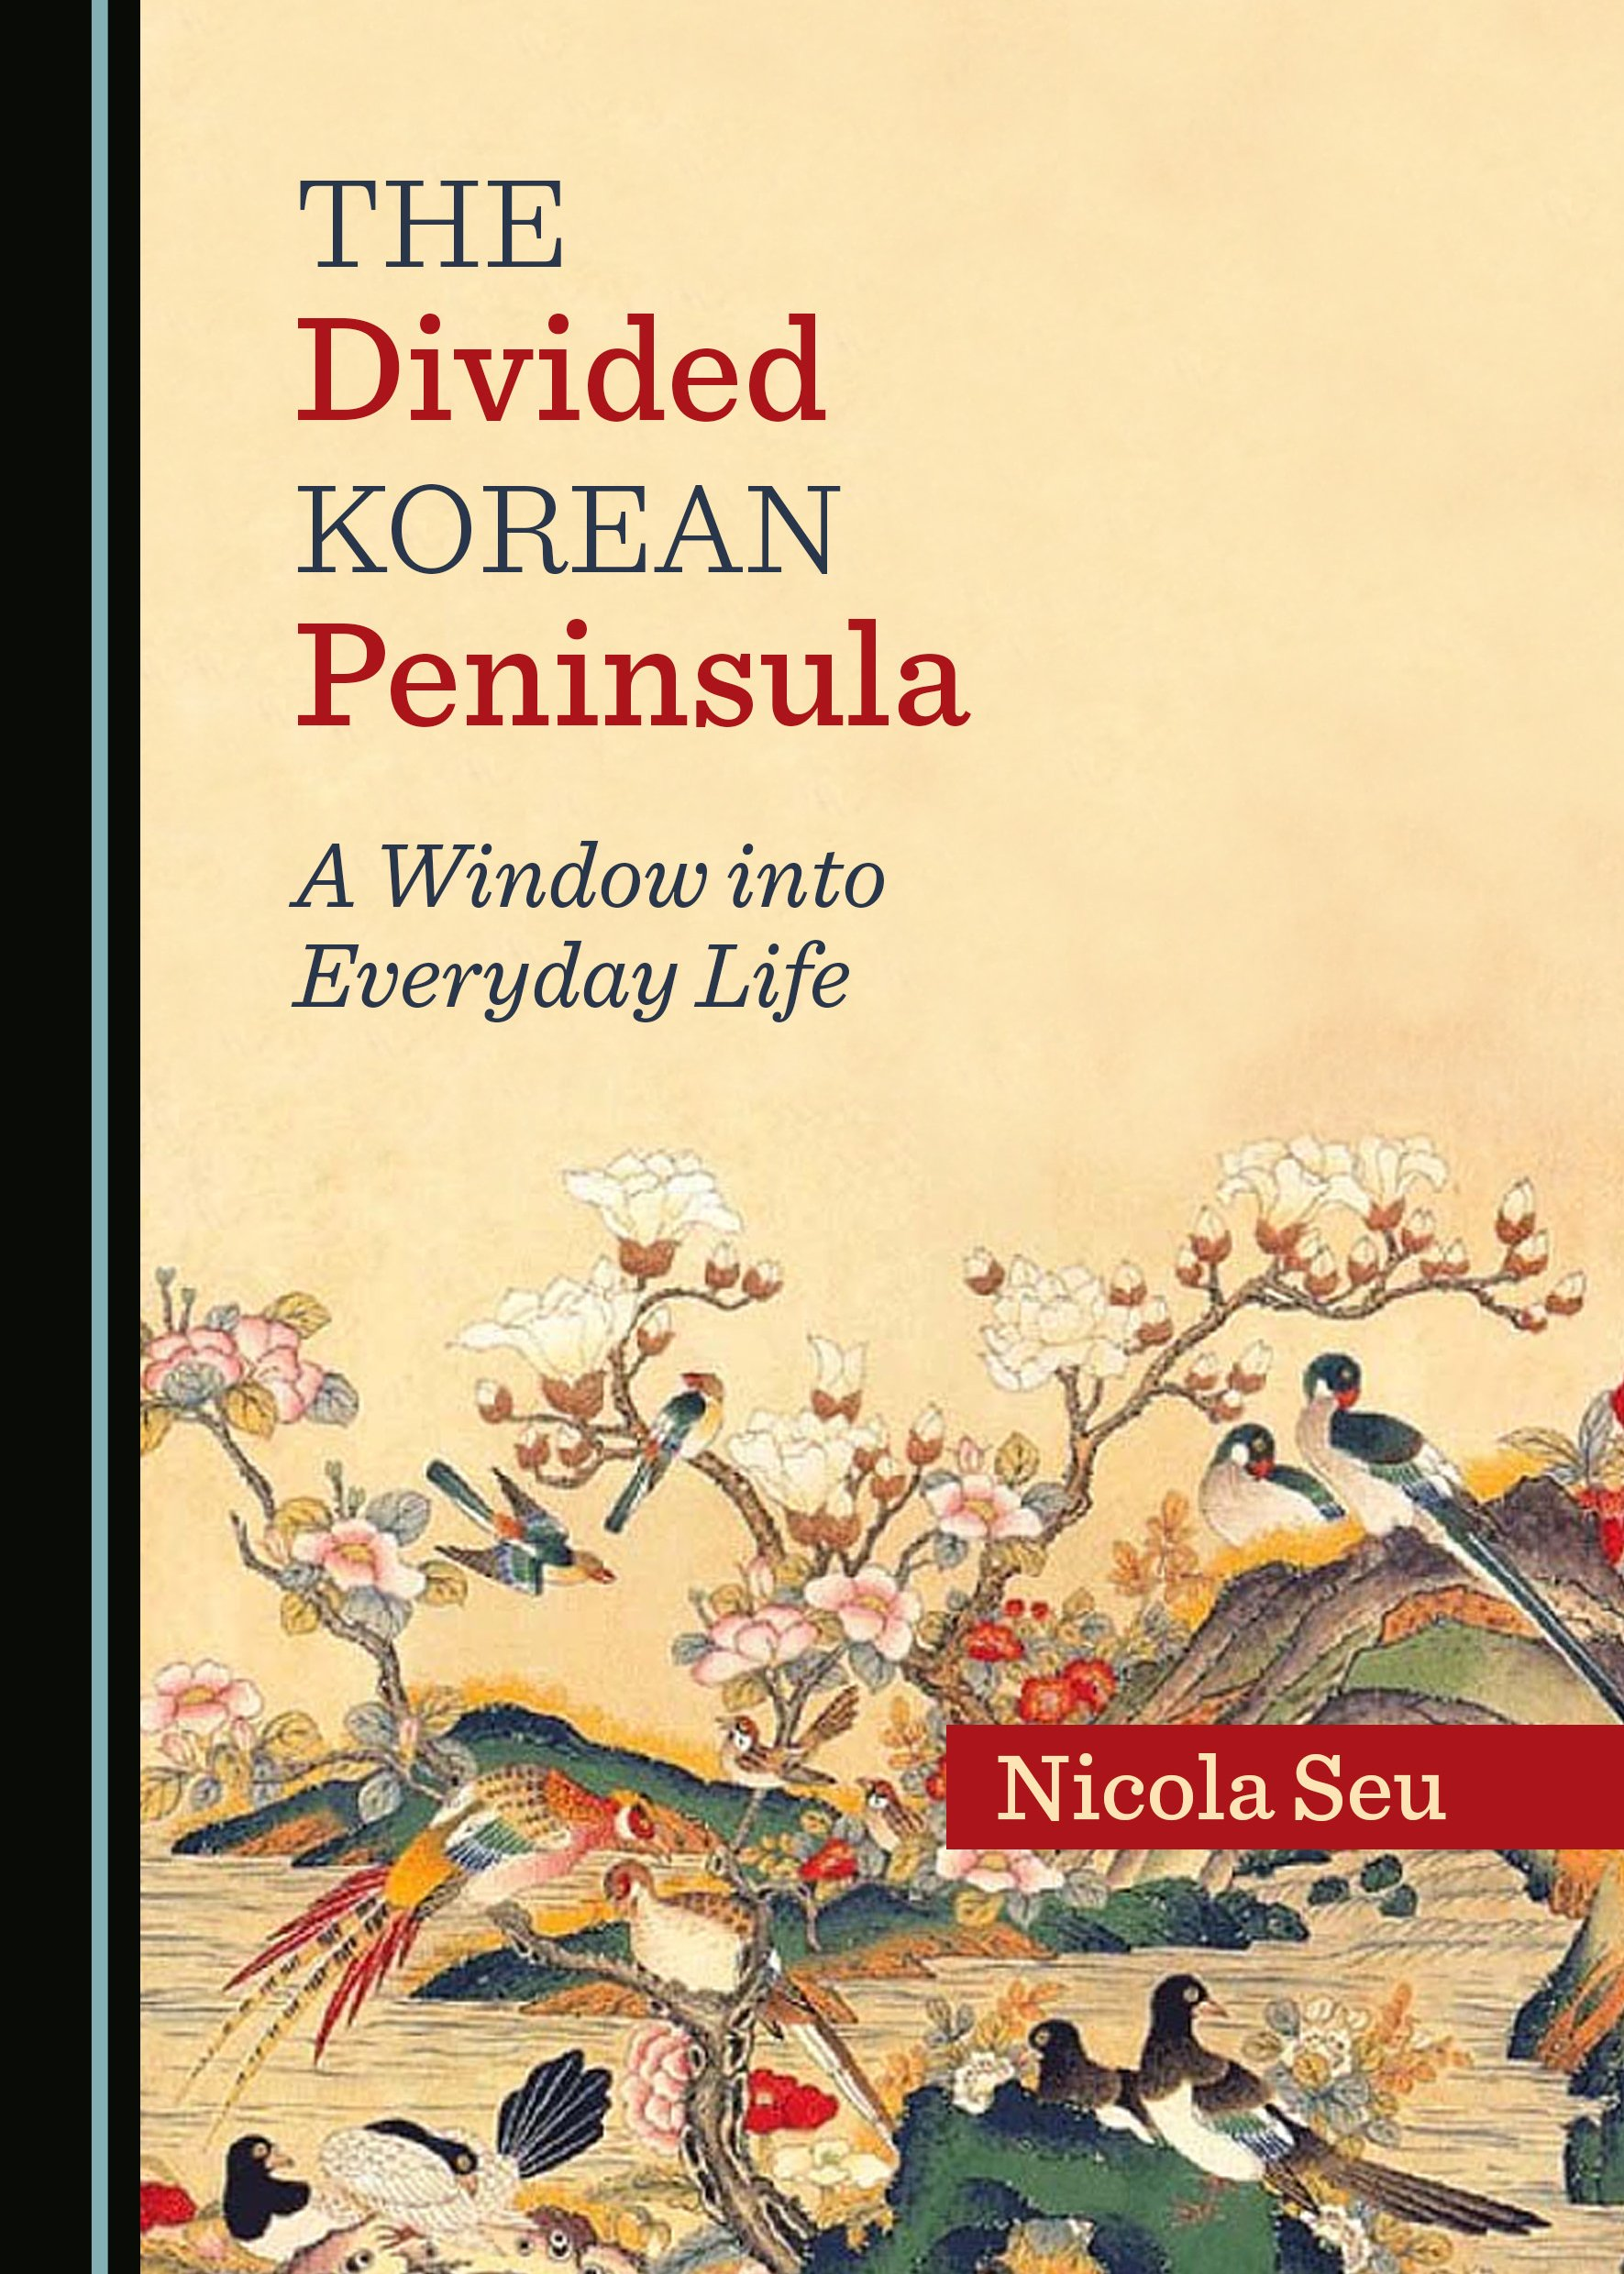 The Divided Korean Peninsula: A Window into Everyday Life